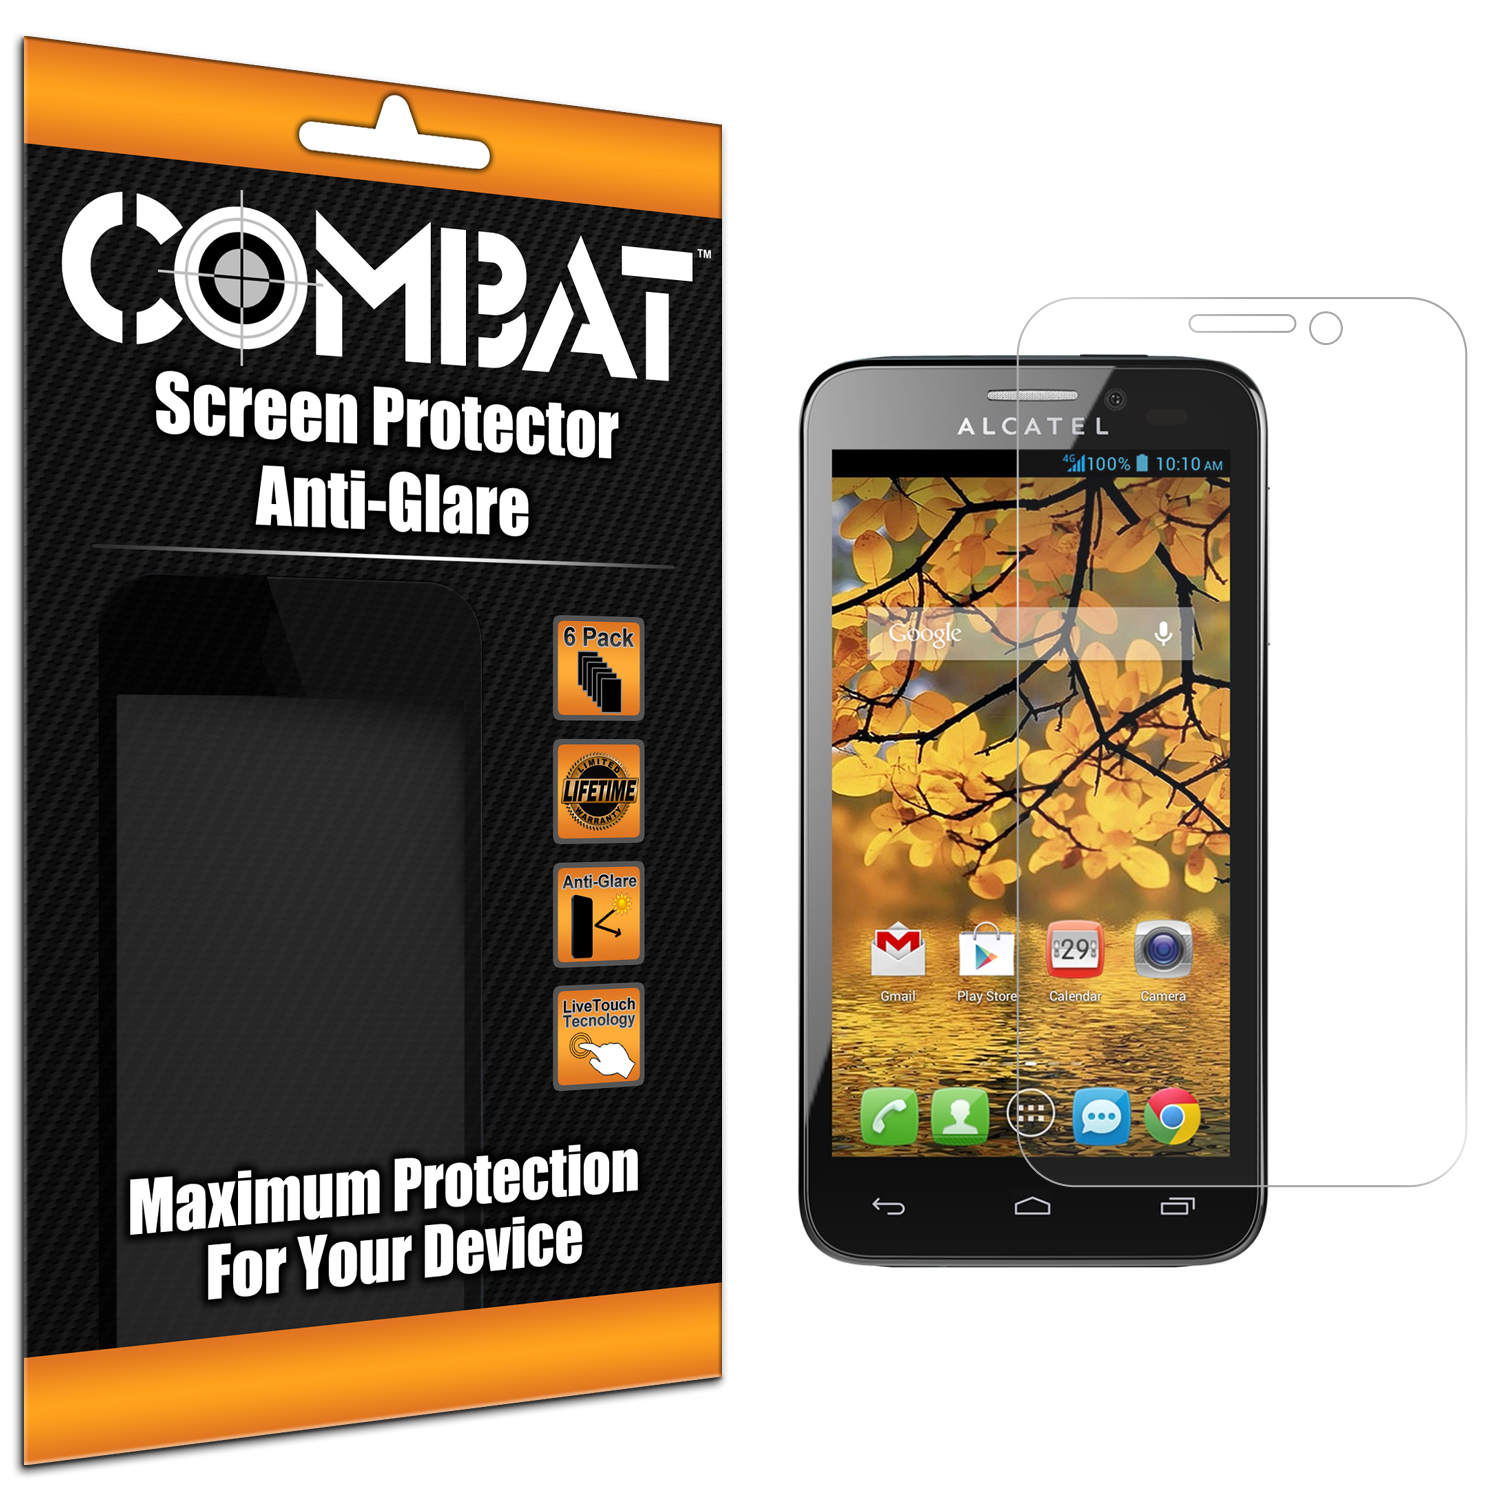 Alcatel One Touch Evolve 2 Combat 6 Pack Anti-Glare Matte Screen Protector